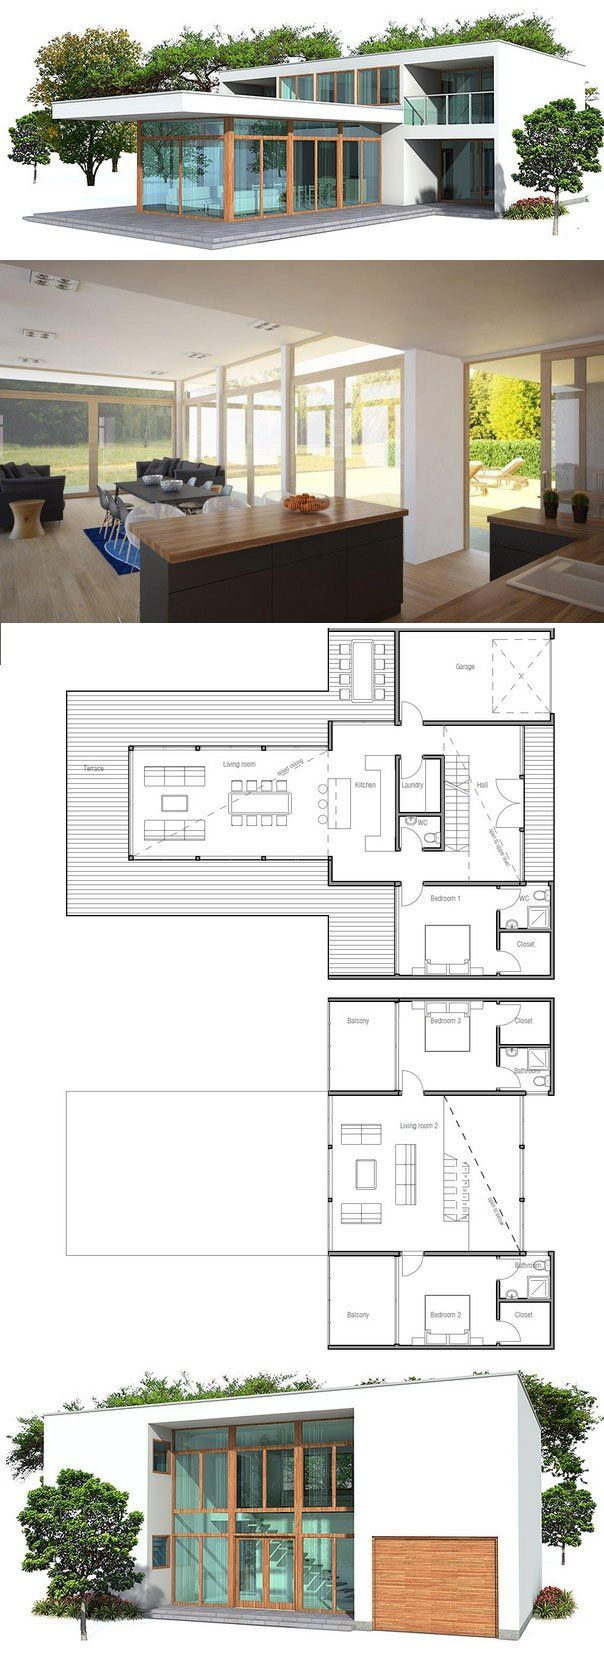 Simple Modern House Floor Plans 25+ best small modern house plans ideas on pinterest | modern